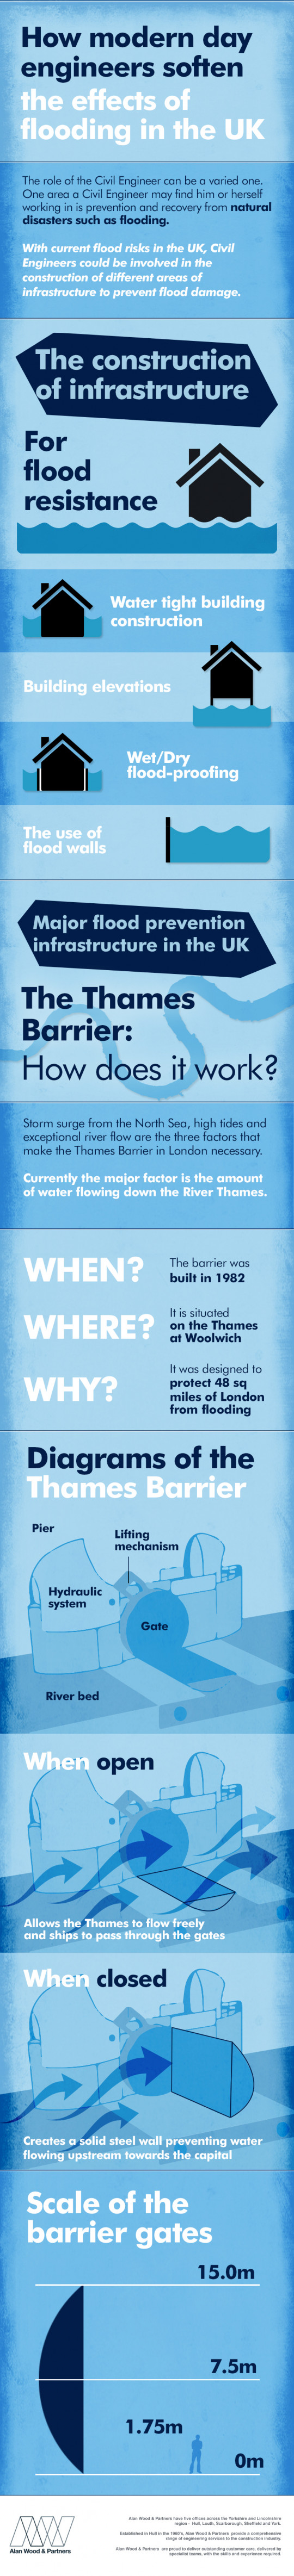 How modern day engineers soften the effects of flooding in the UK